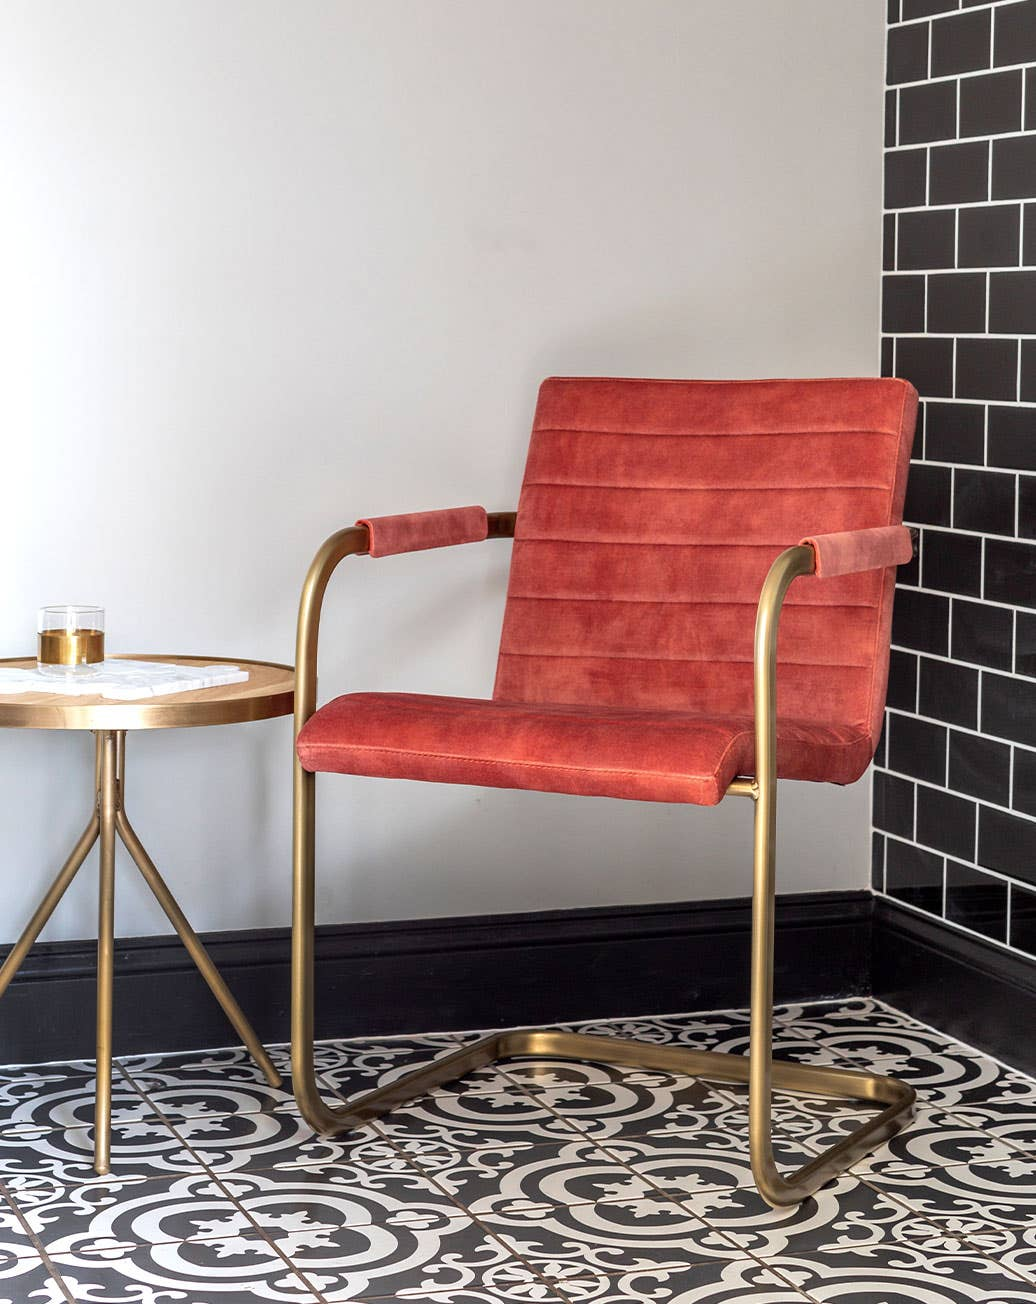 Industry West Sable Armchair in blush with brass frame in a room with black and white tile